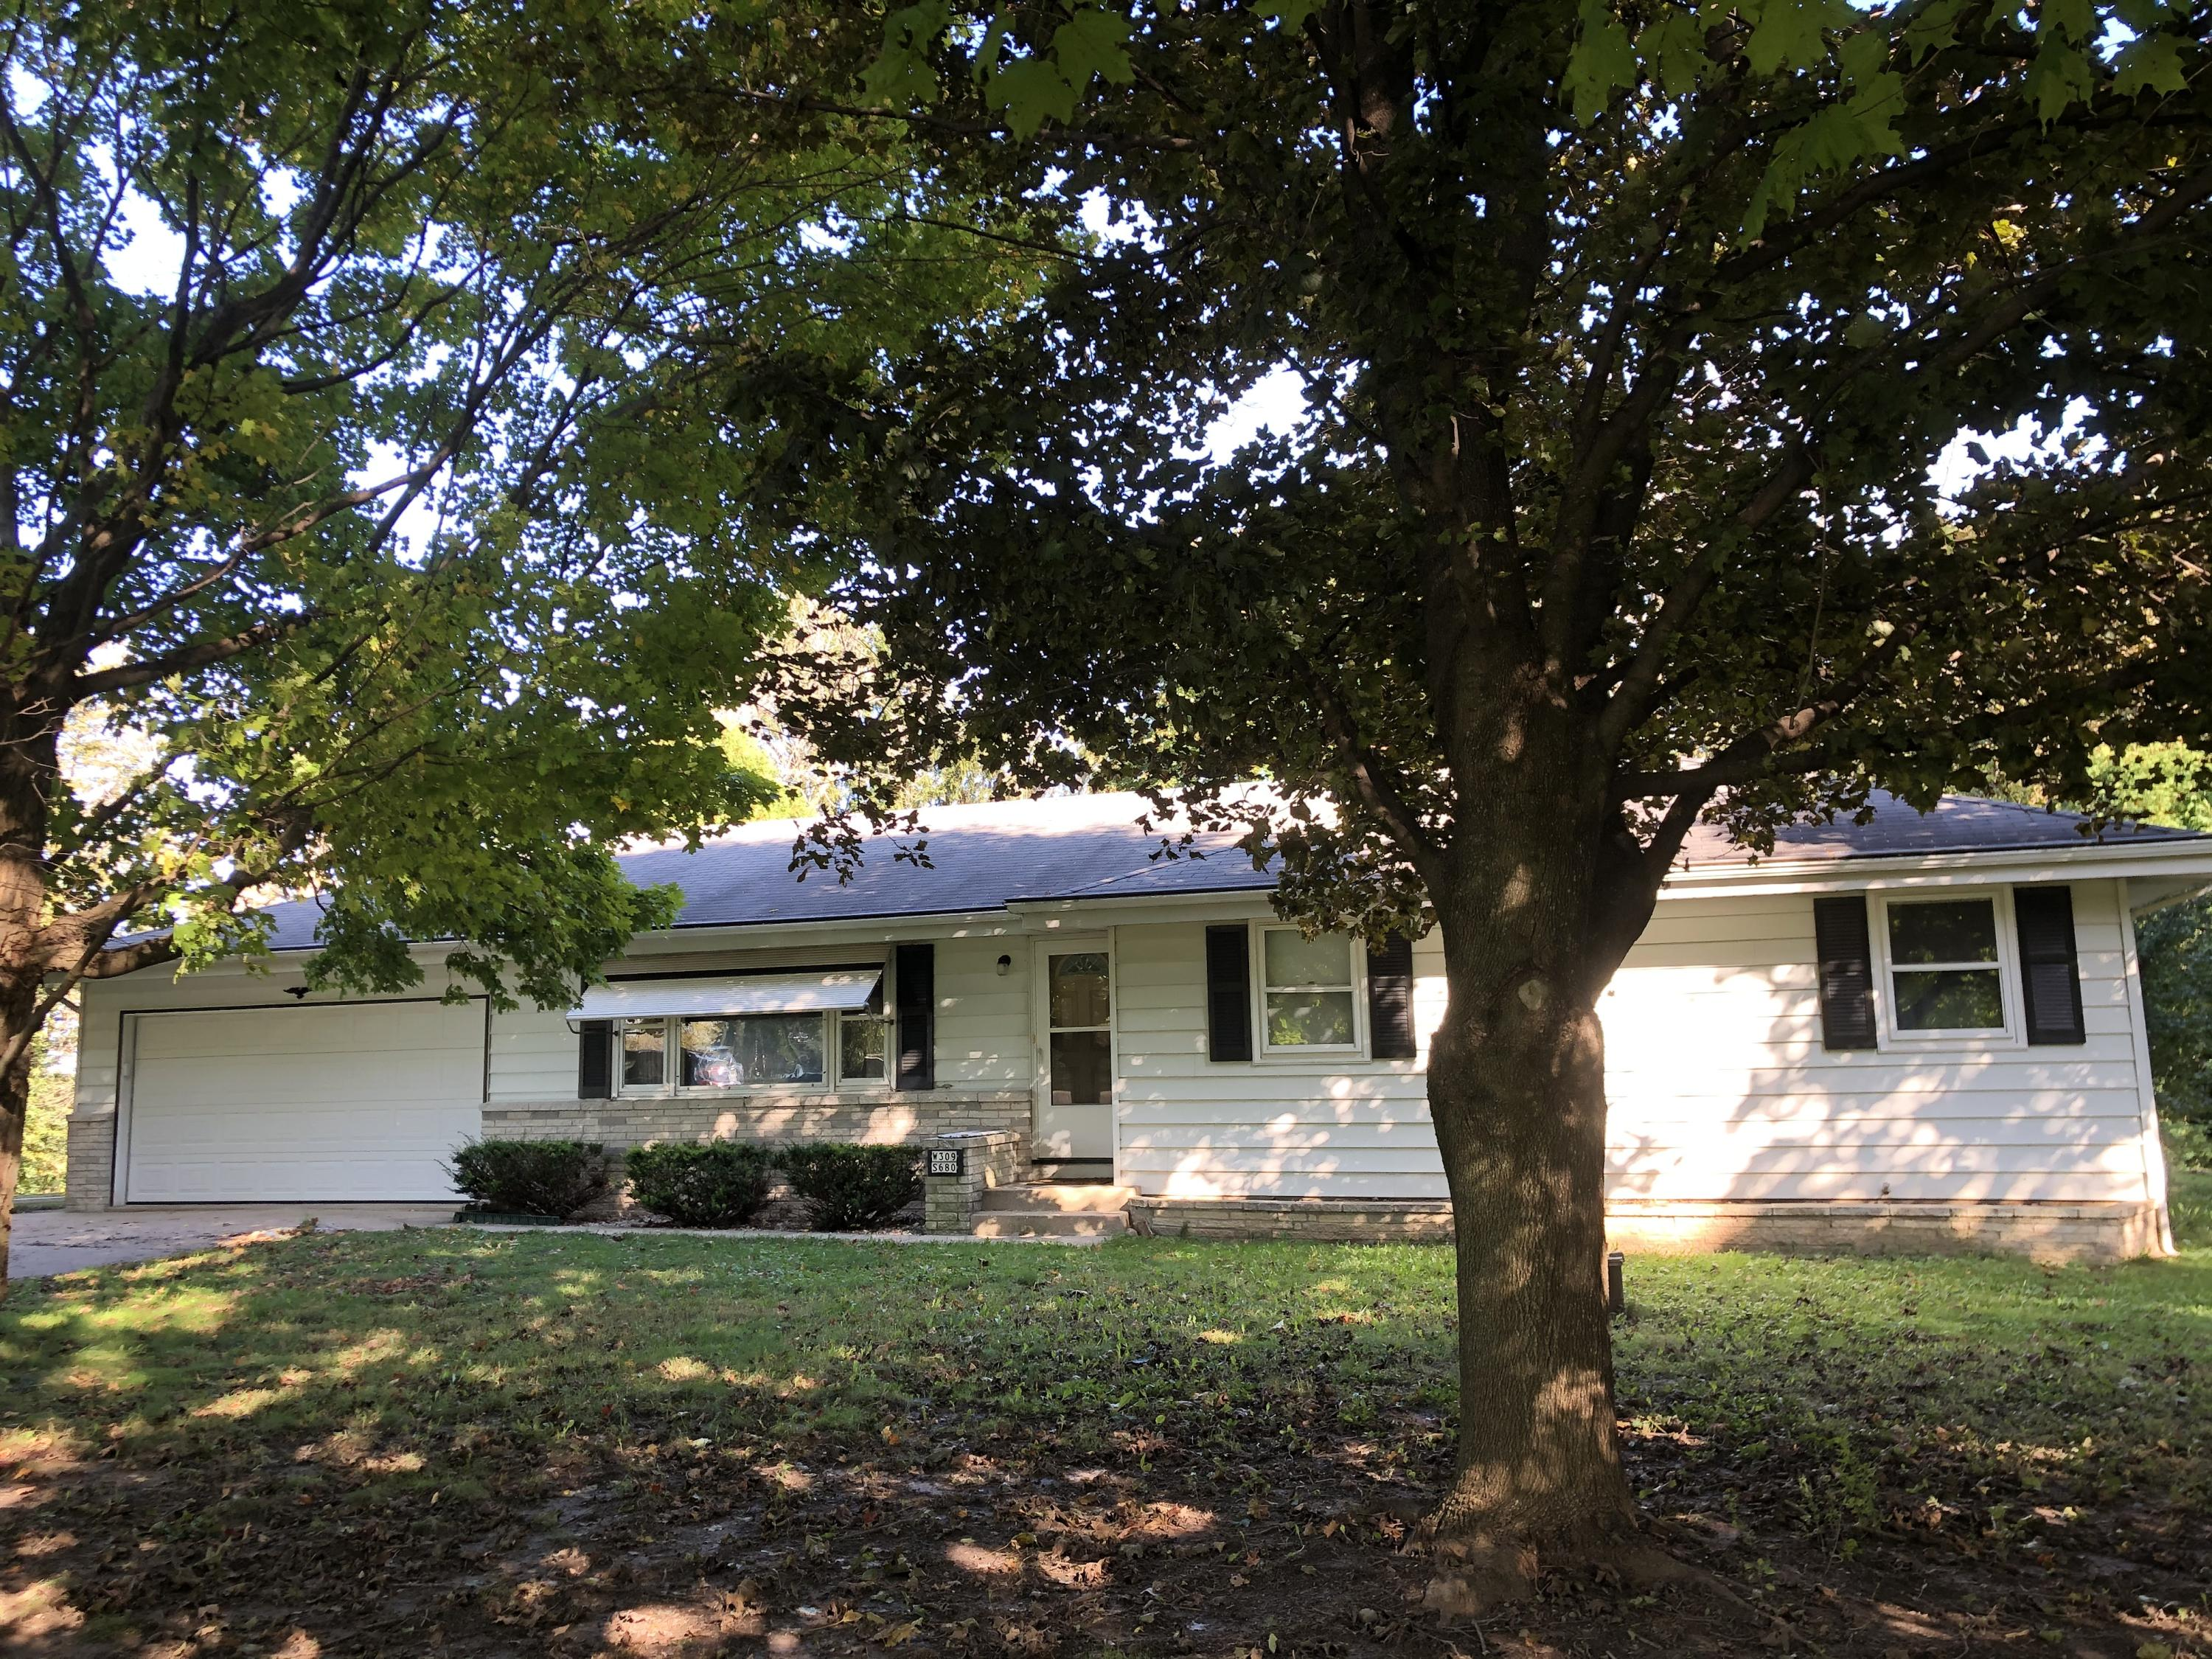 W309S680 Maple Ave, Delafield, Wisconsin 53188, 3 Bedrooms Bedrooms, 5 Rooms Rooms,1 BathroomBathrooms,Single-Family,For Sale,Maple Ave,1663209